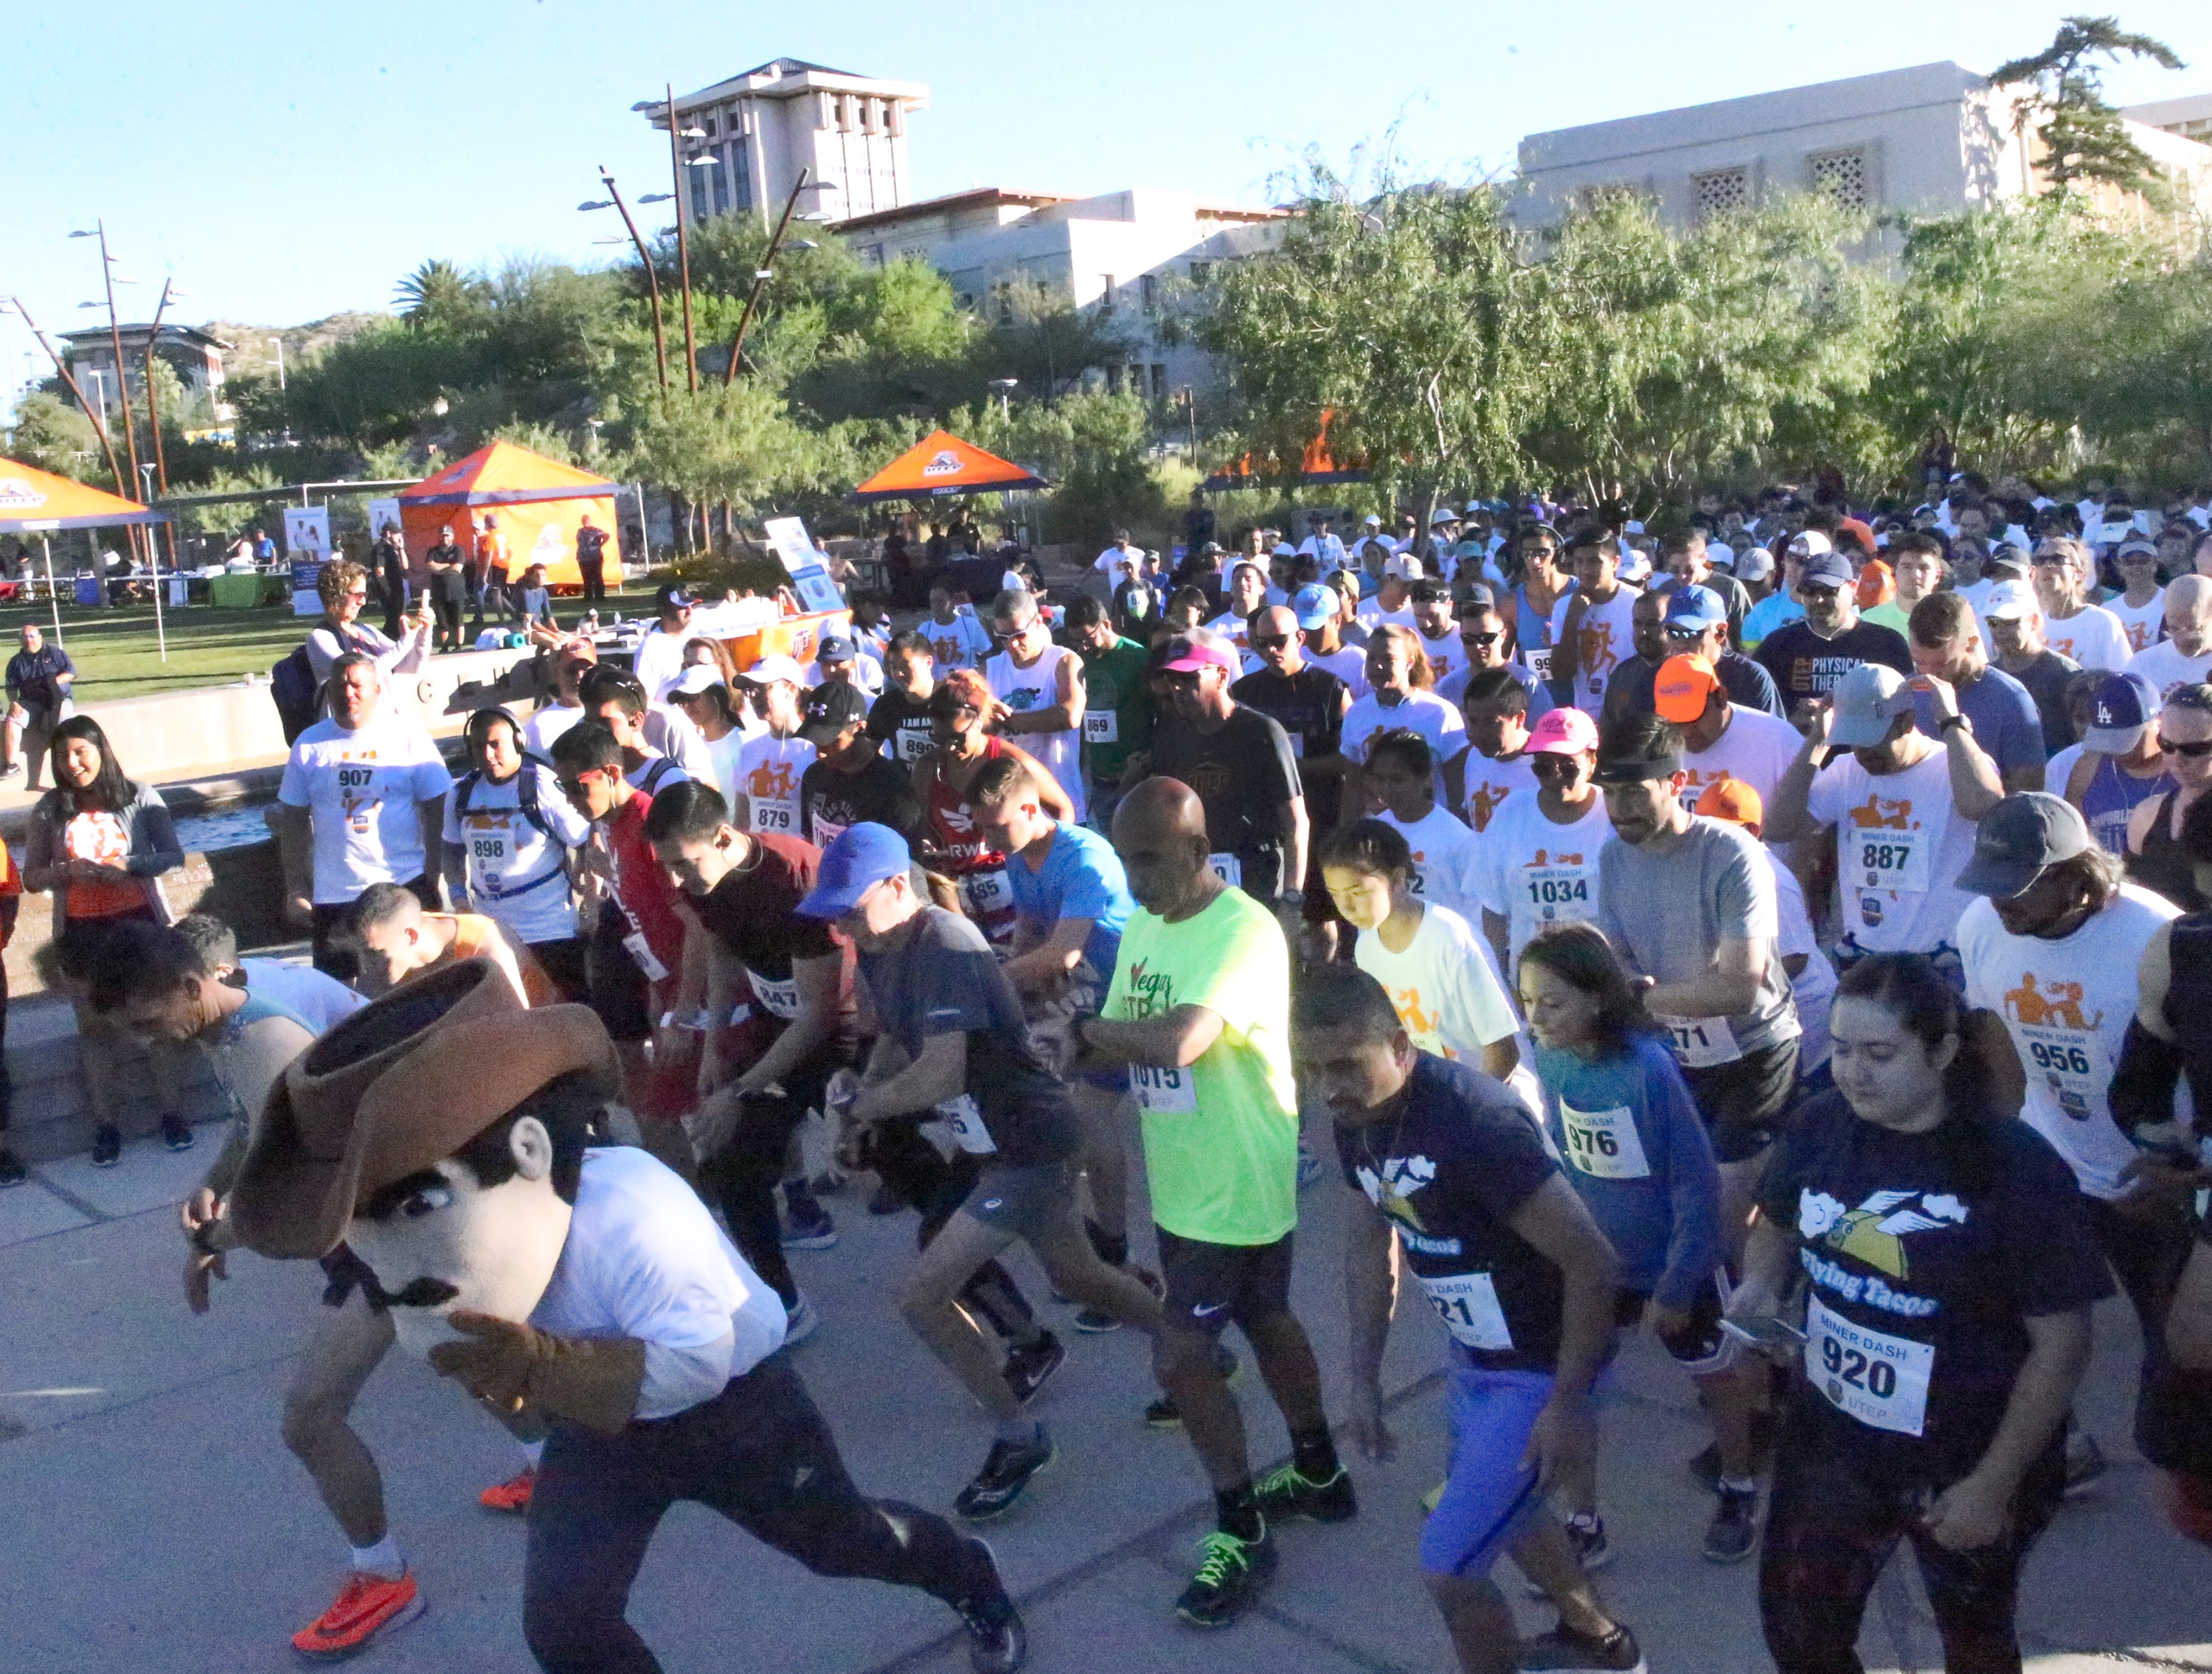 Paydirt leads the way at the start of the 9th Annual Miner Dash & Family Fiesta Sunday at Centennial Plaza on the UTEP campus.